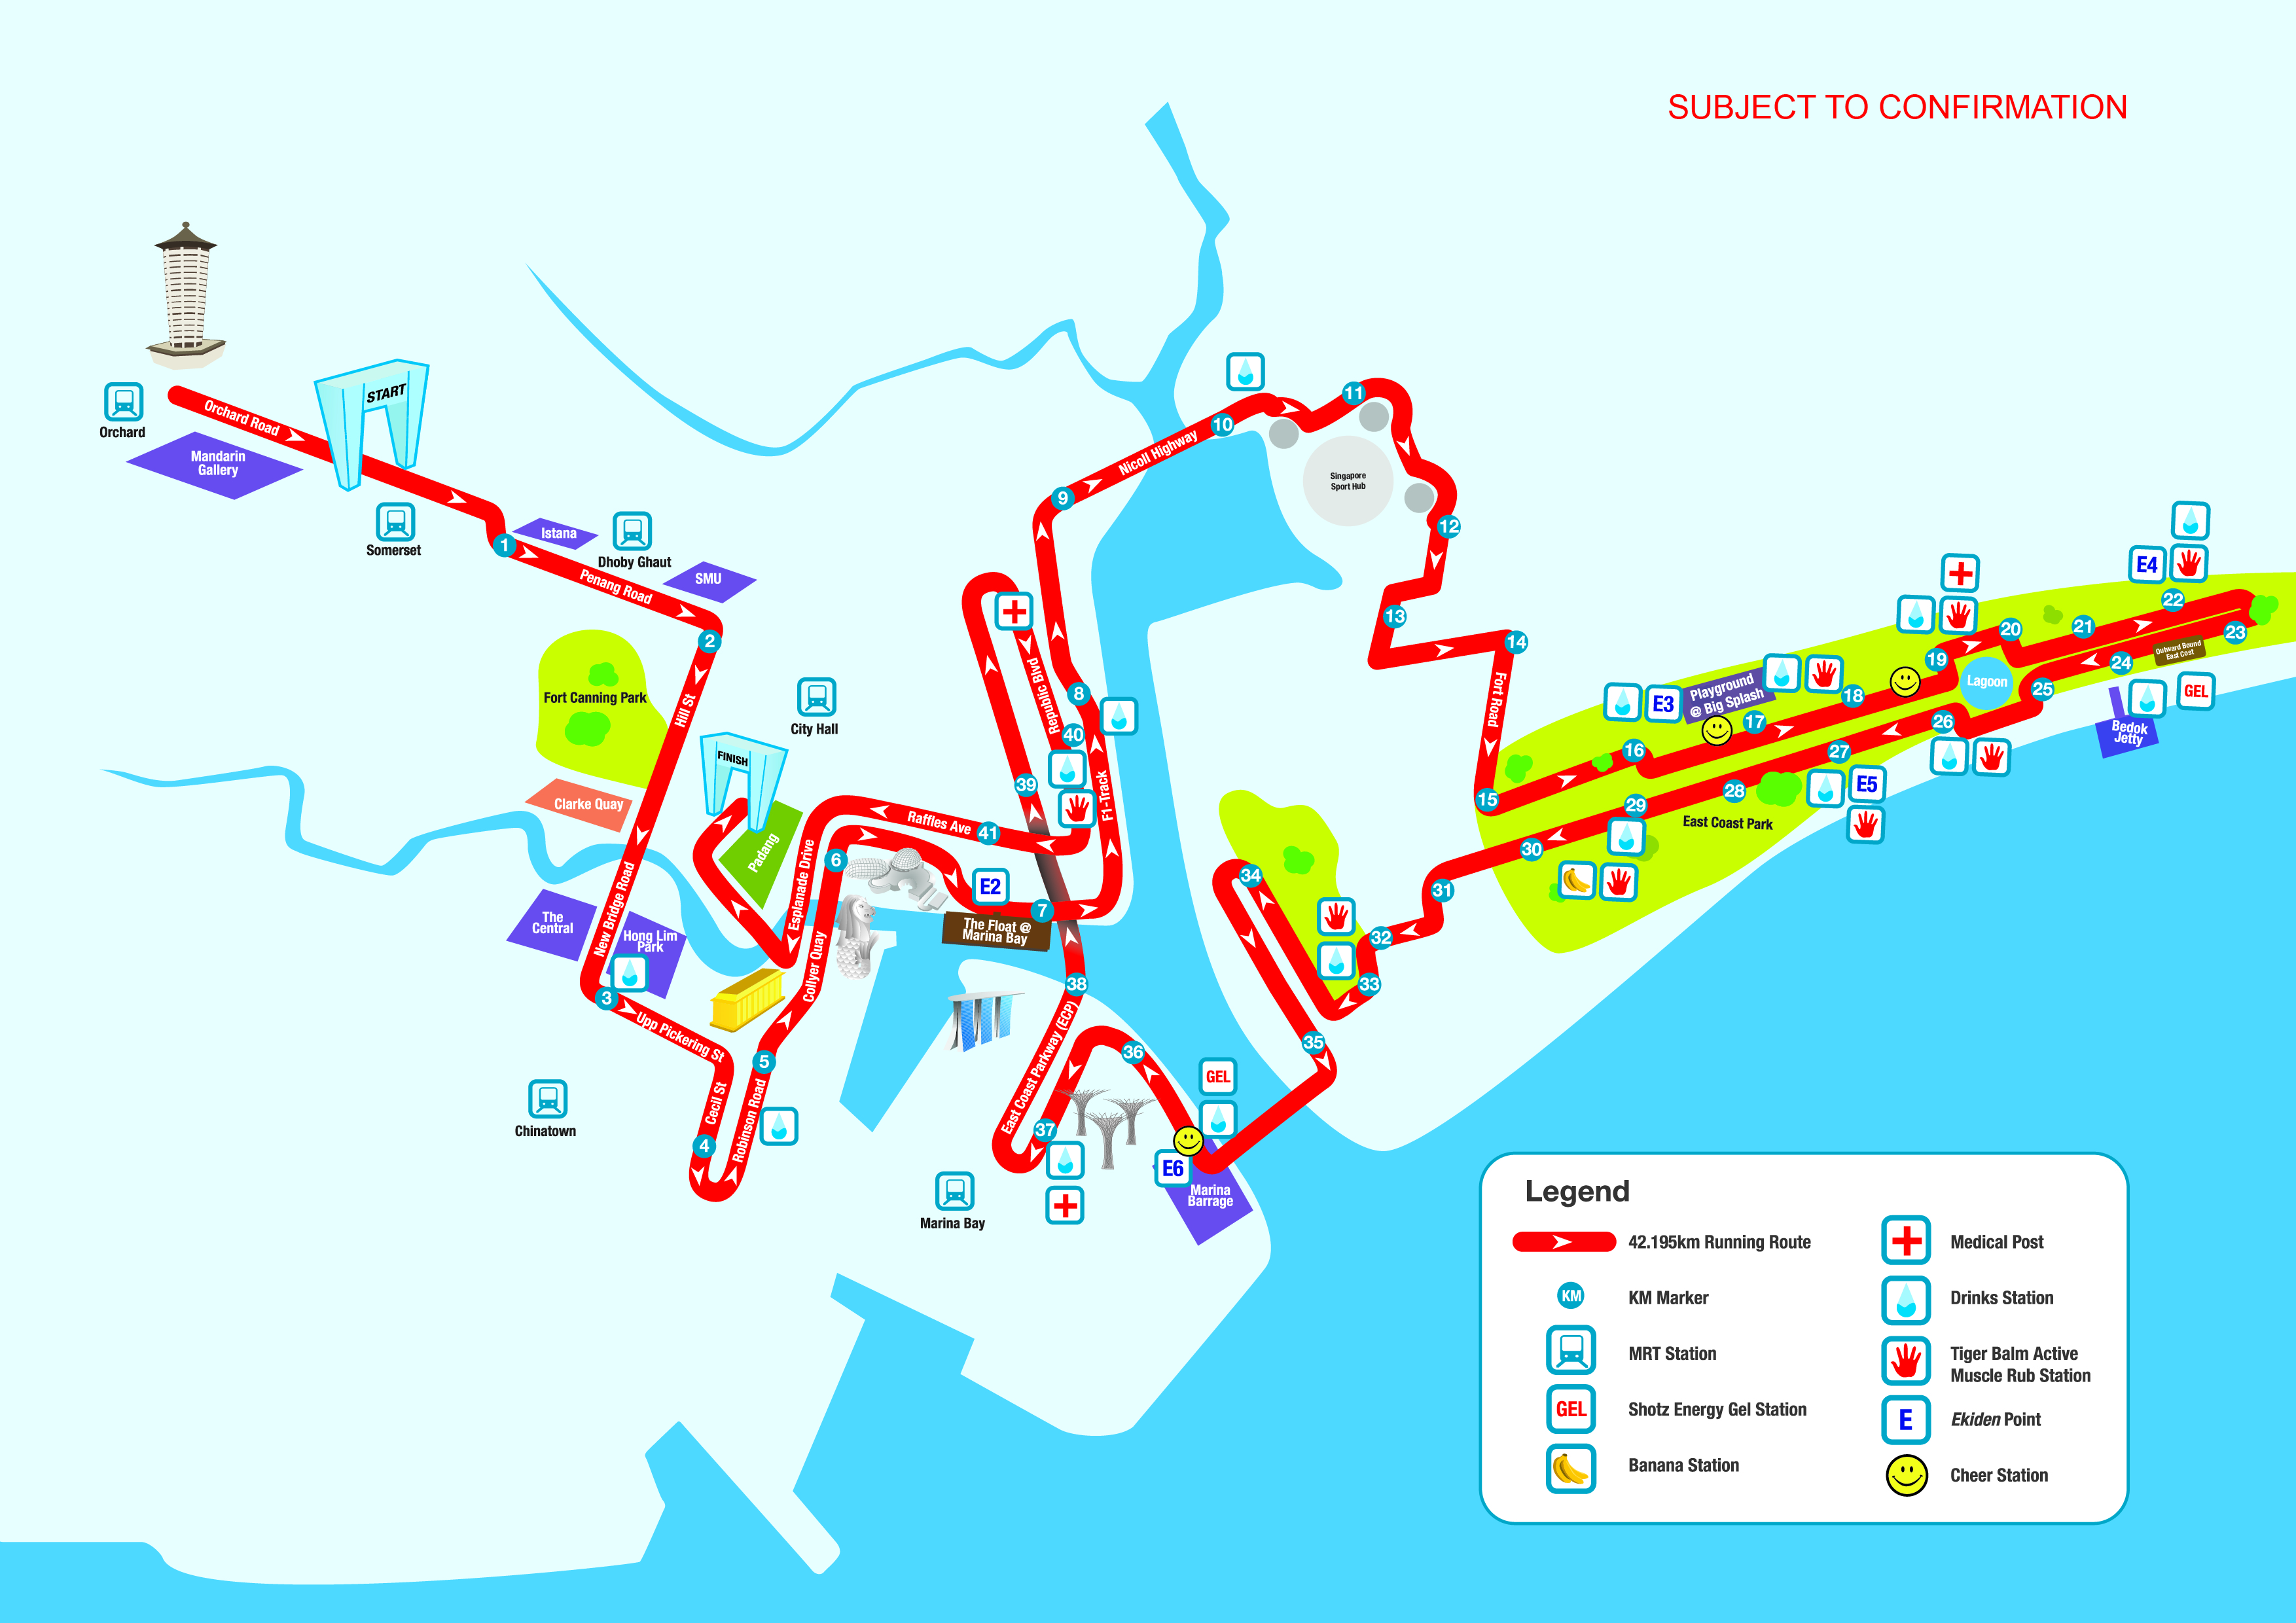 42km route map stanchart marathon singapore 2014